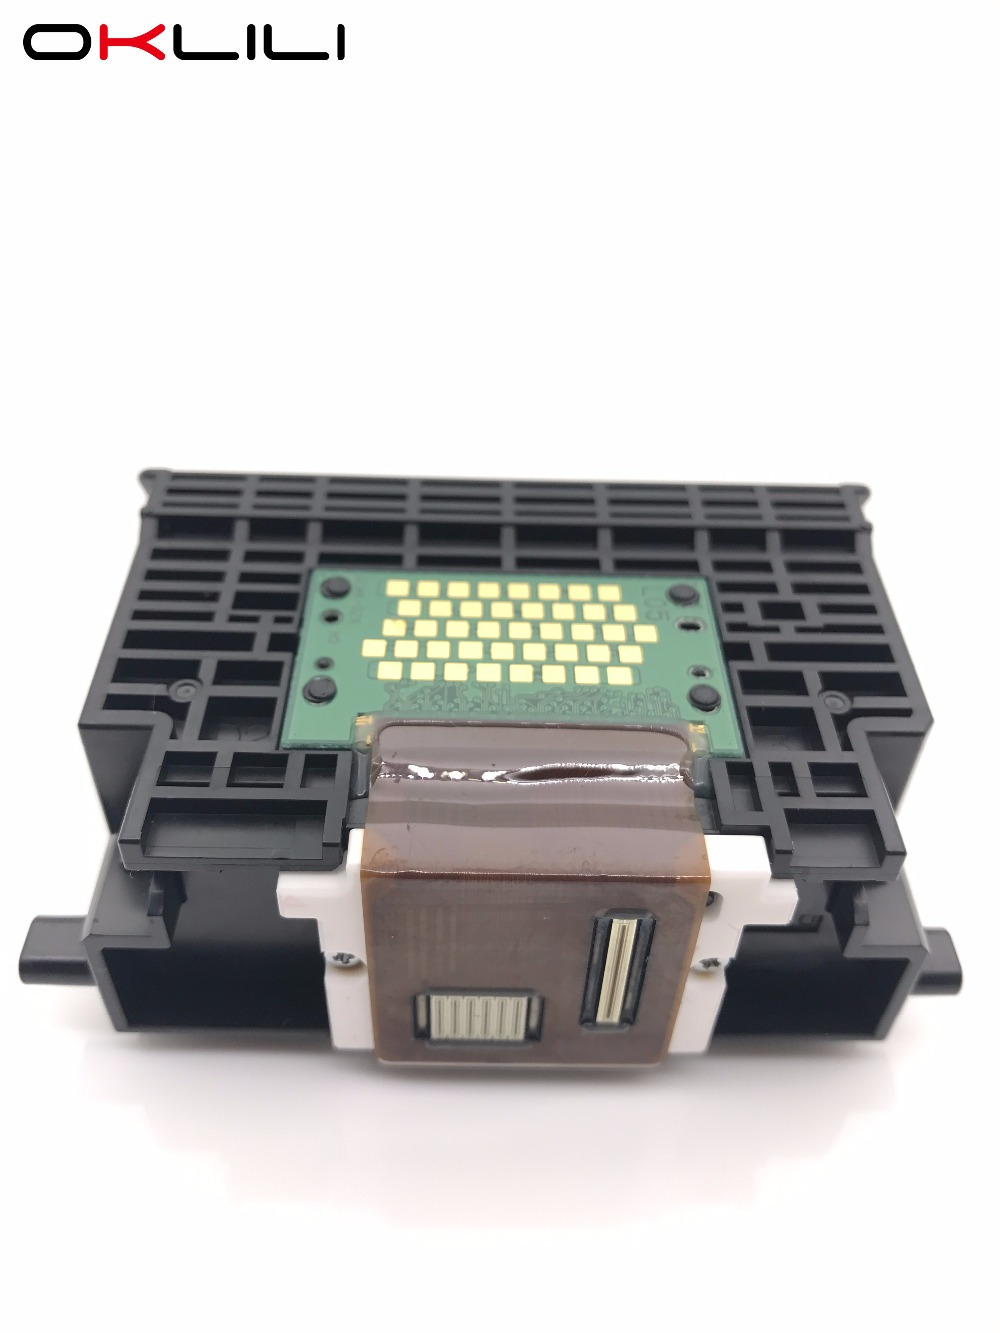 OKLILI ORIGINAL QY6-0059 QY6-0059-000 Printhead Print Head Printer Head for Canon iP4200 MP500 MP530 high quality original print head qy6 0057 printhead compatible for canon ip5000 ip5000r printer head